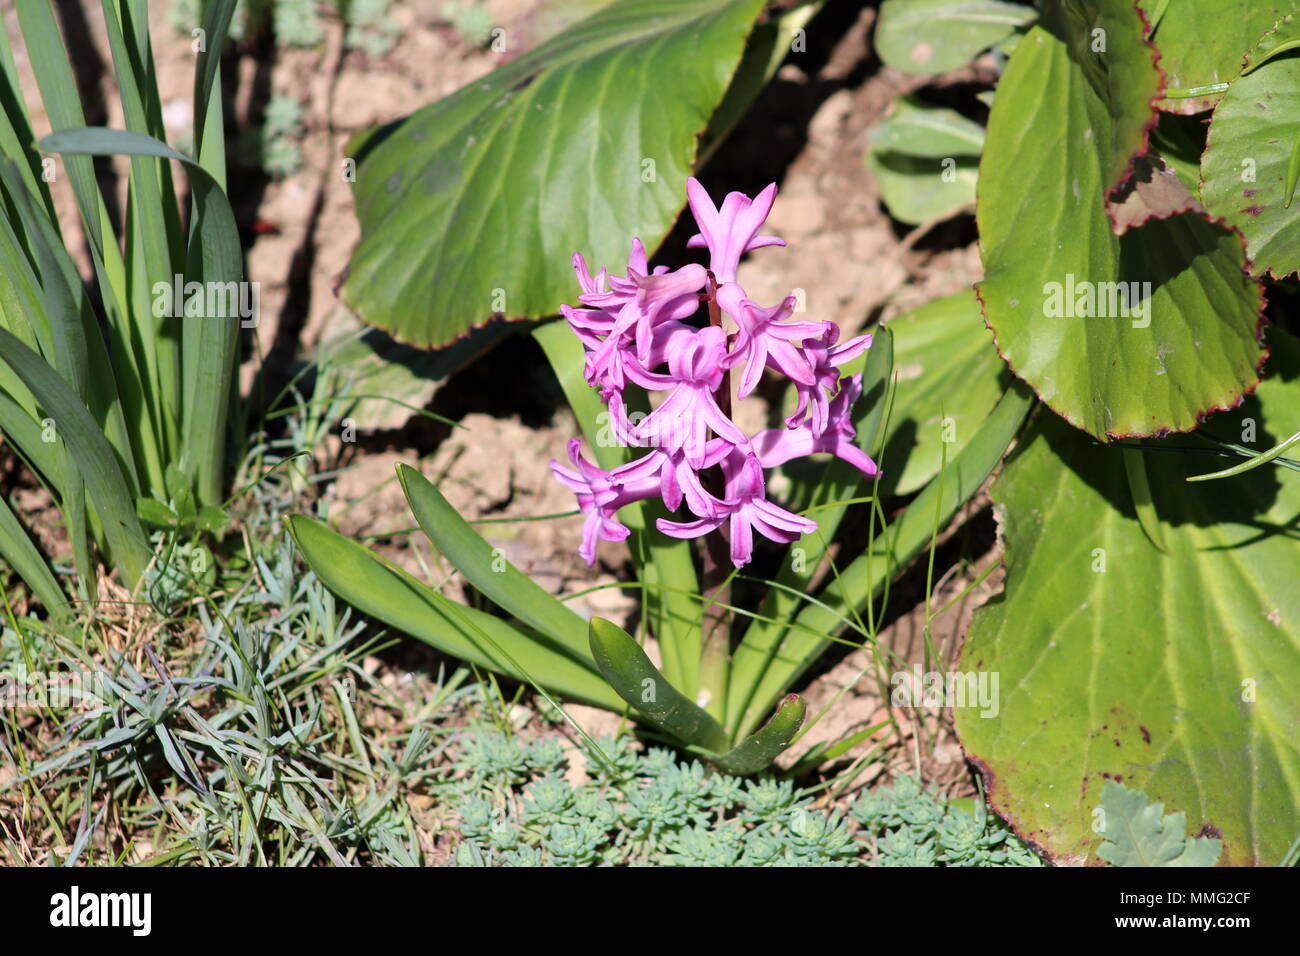 Hyacinths or hyacinthus pink flowers starting to form spike or hyacinths or hyacinthus pink flowers starting to form spike or racemes of multiple small flowers with long pointy green leaves surrounded in garden wi mightylinksfo